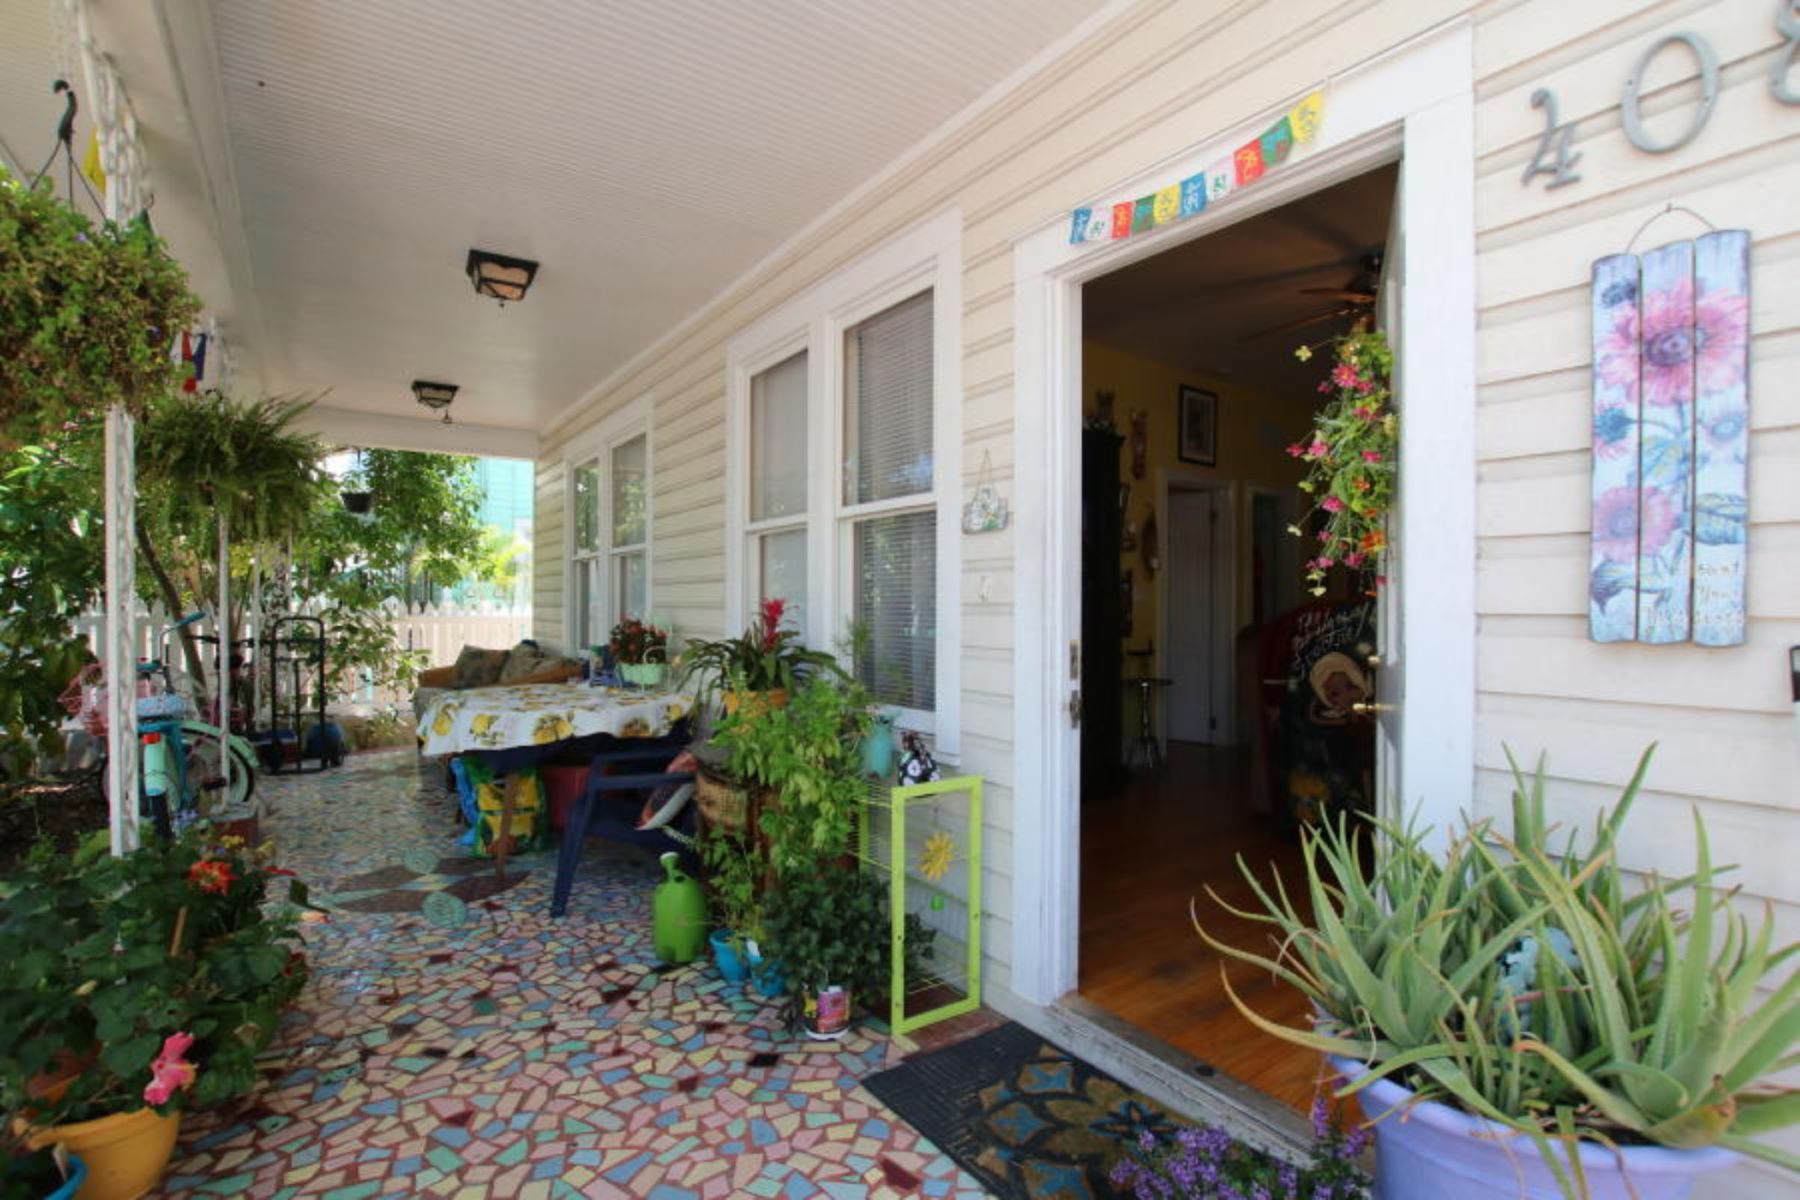 Duplex for Sale at Duplex in the Heart of Key West 408 Virginia Street Key West, Florida 33040 United States